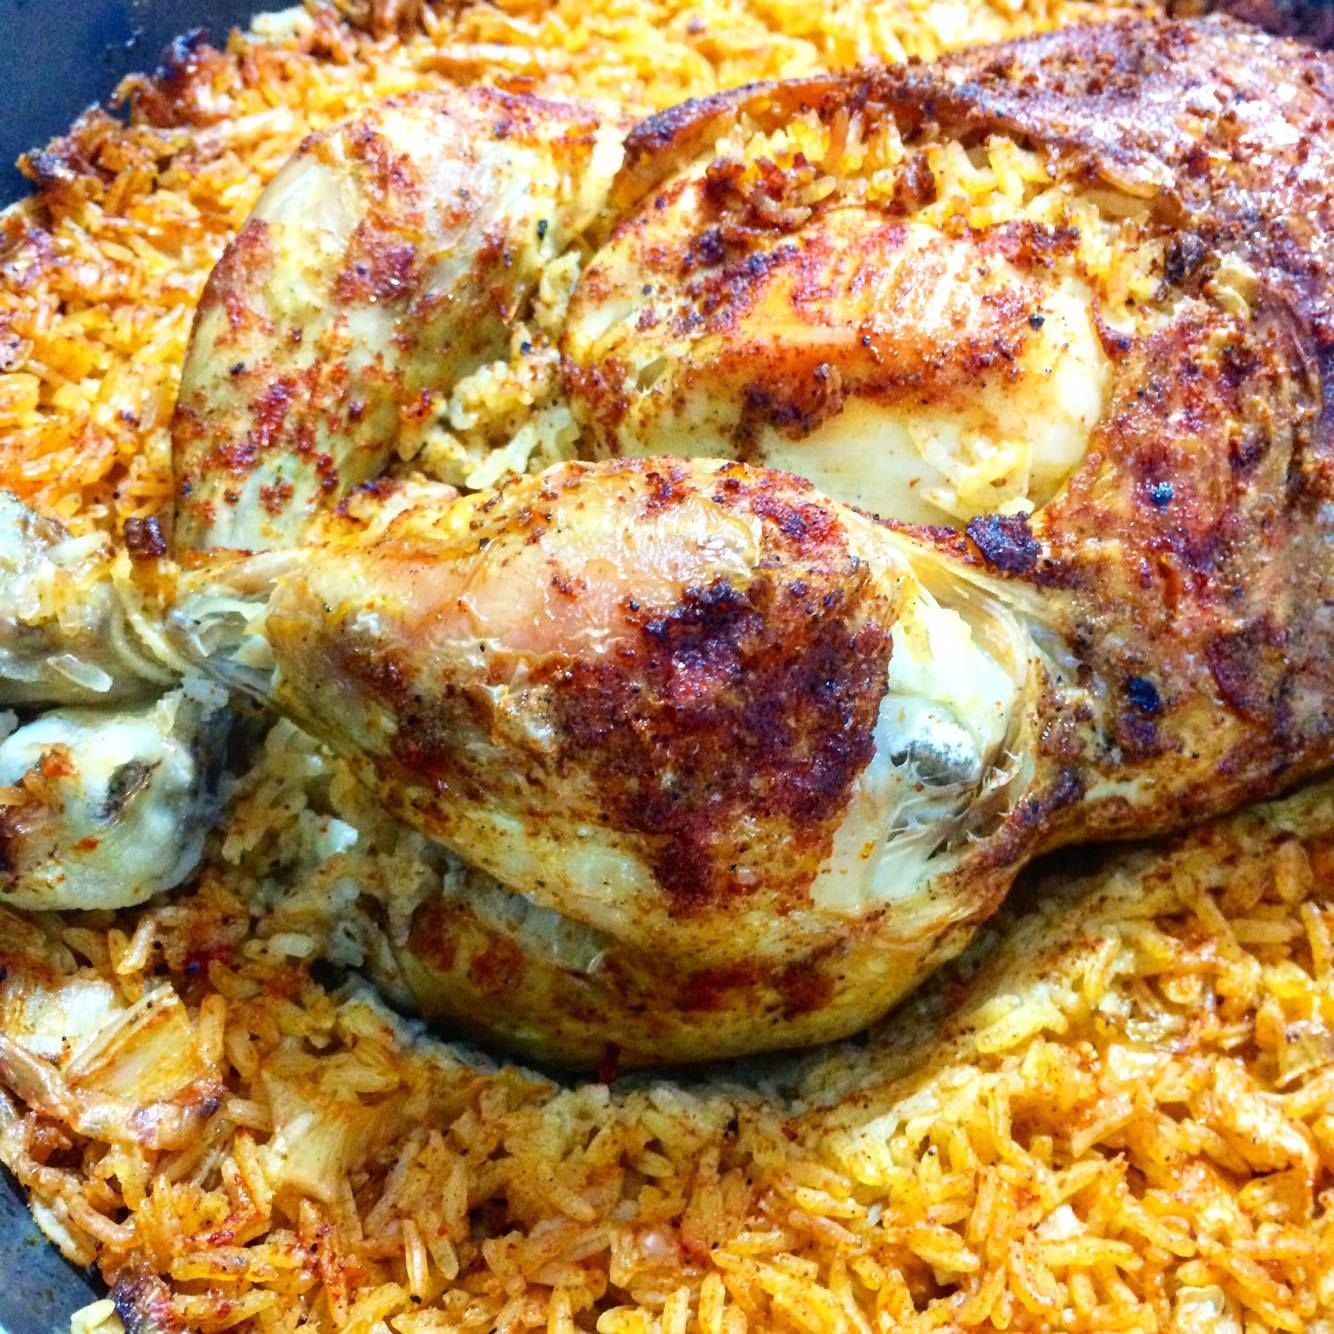 Jnf impact in the jnf kitchen osis passover iraqi chicken food forumfinder Images